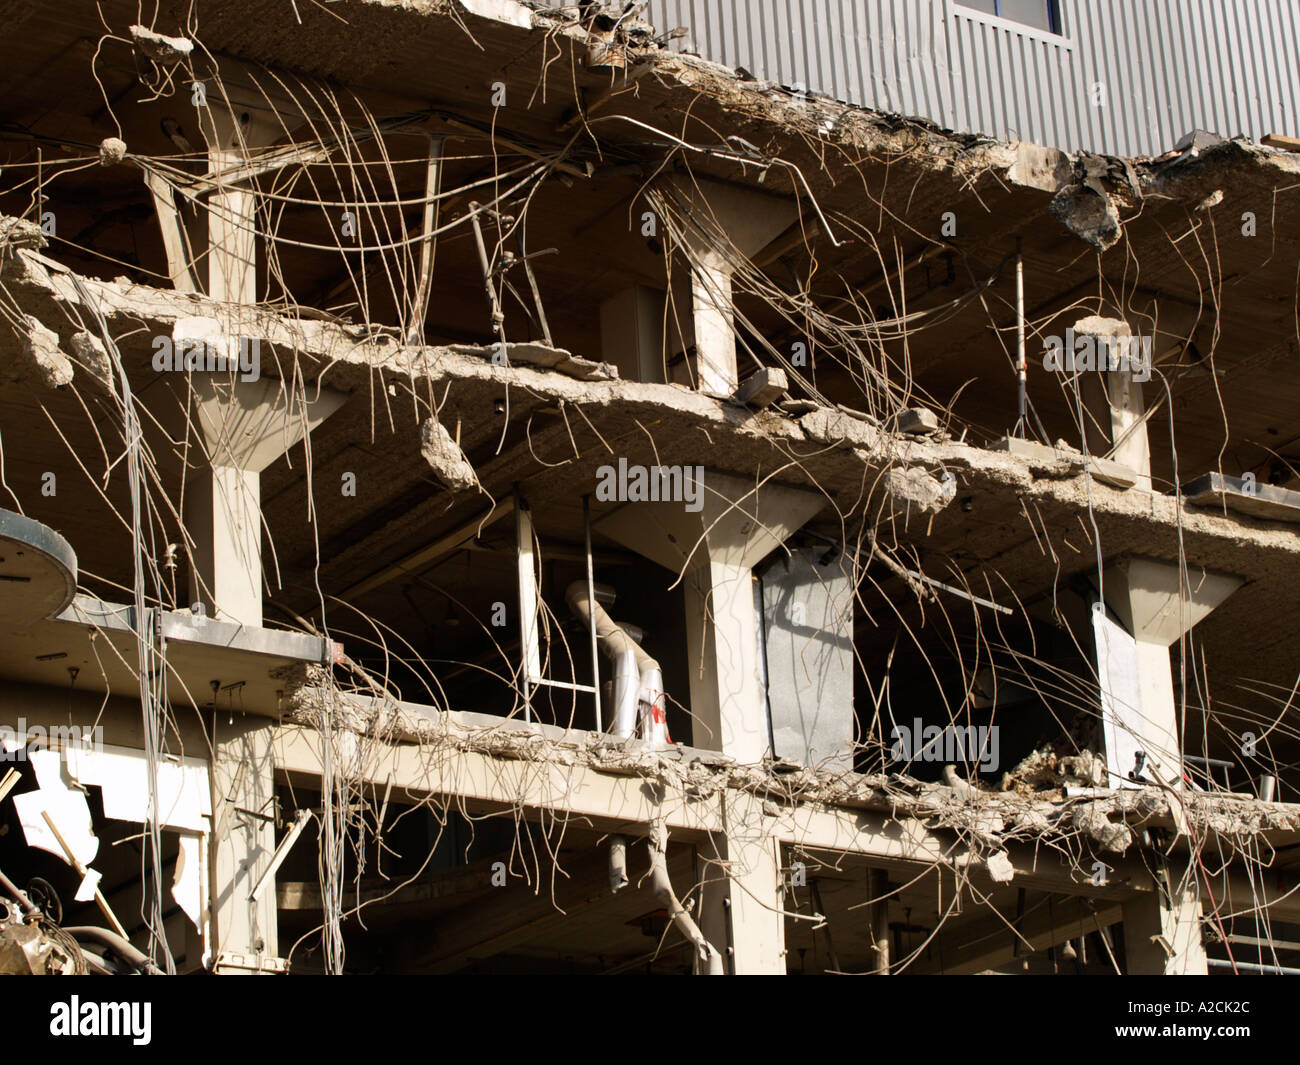 detail of a big industrial building being demolished showing that reinforced concrete was used during construction - Stock Image